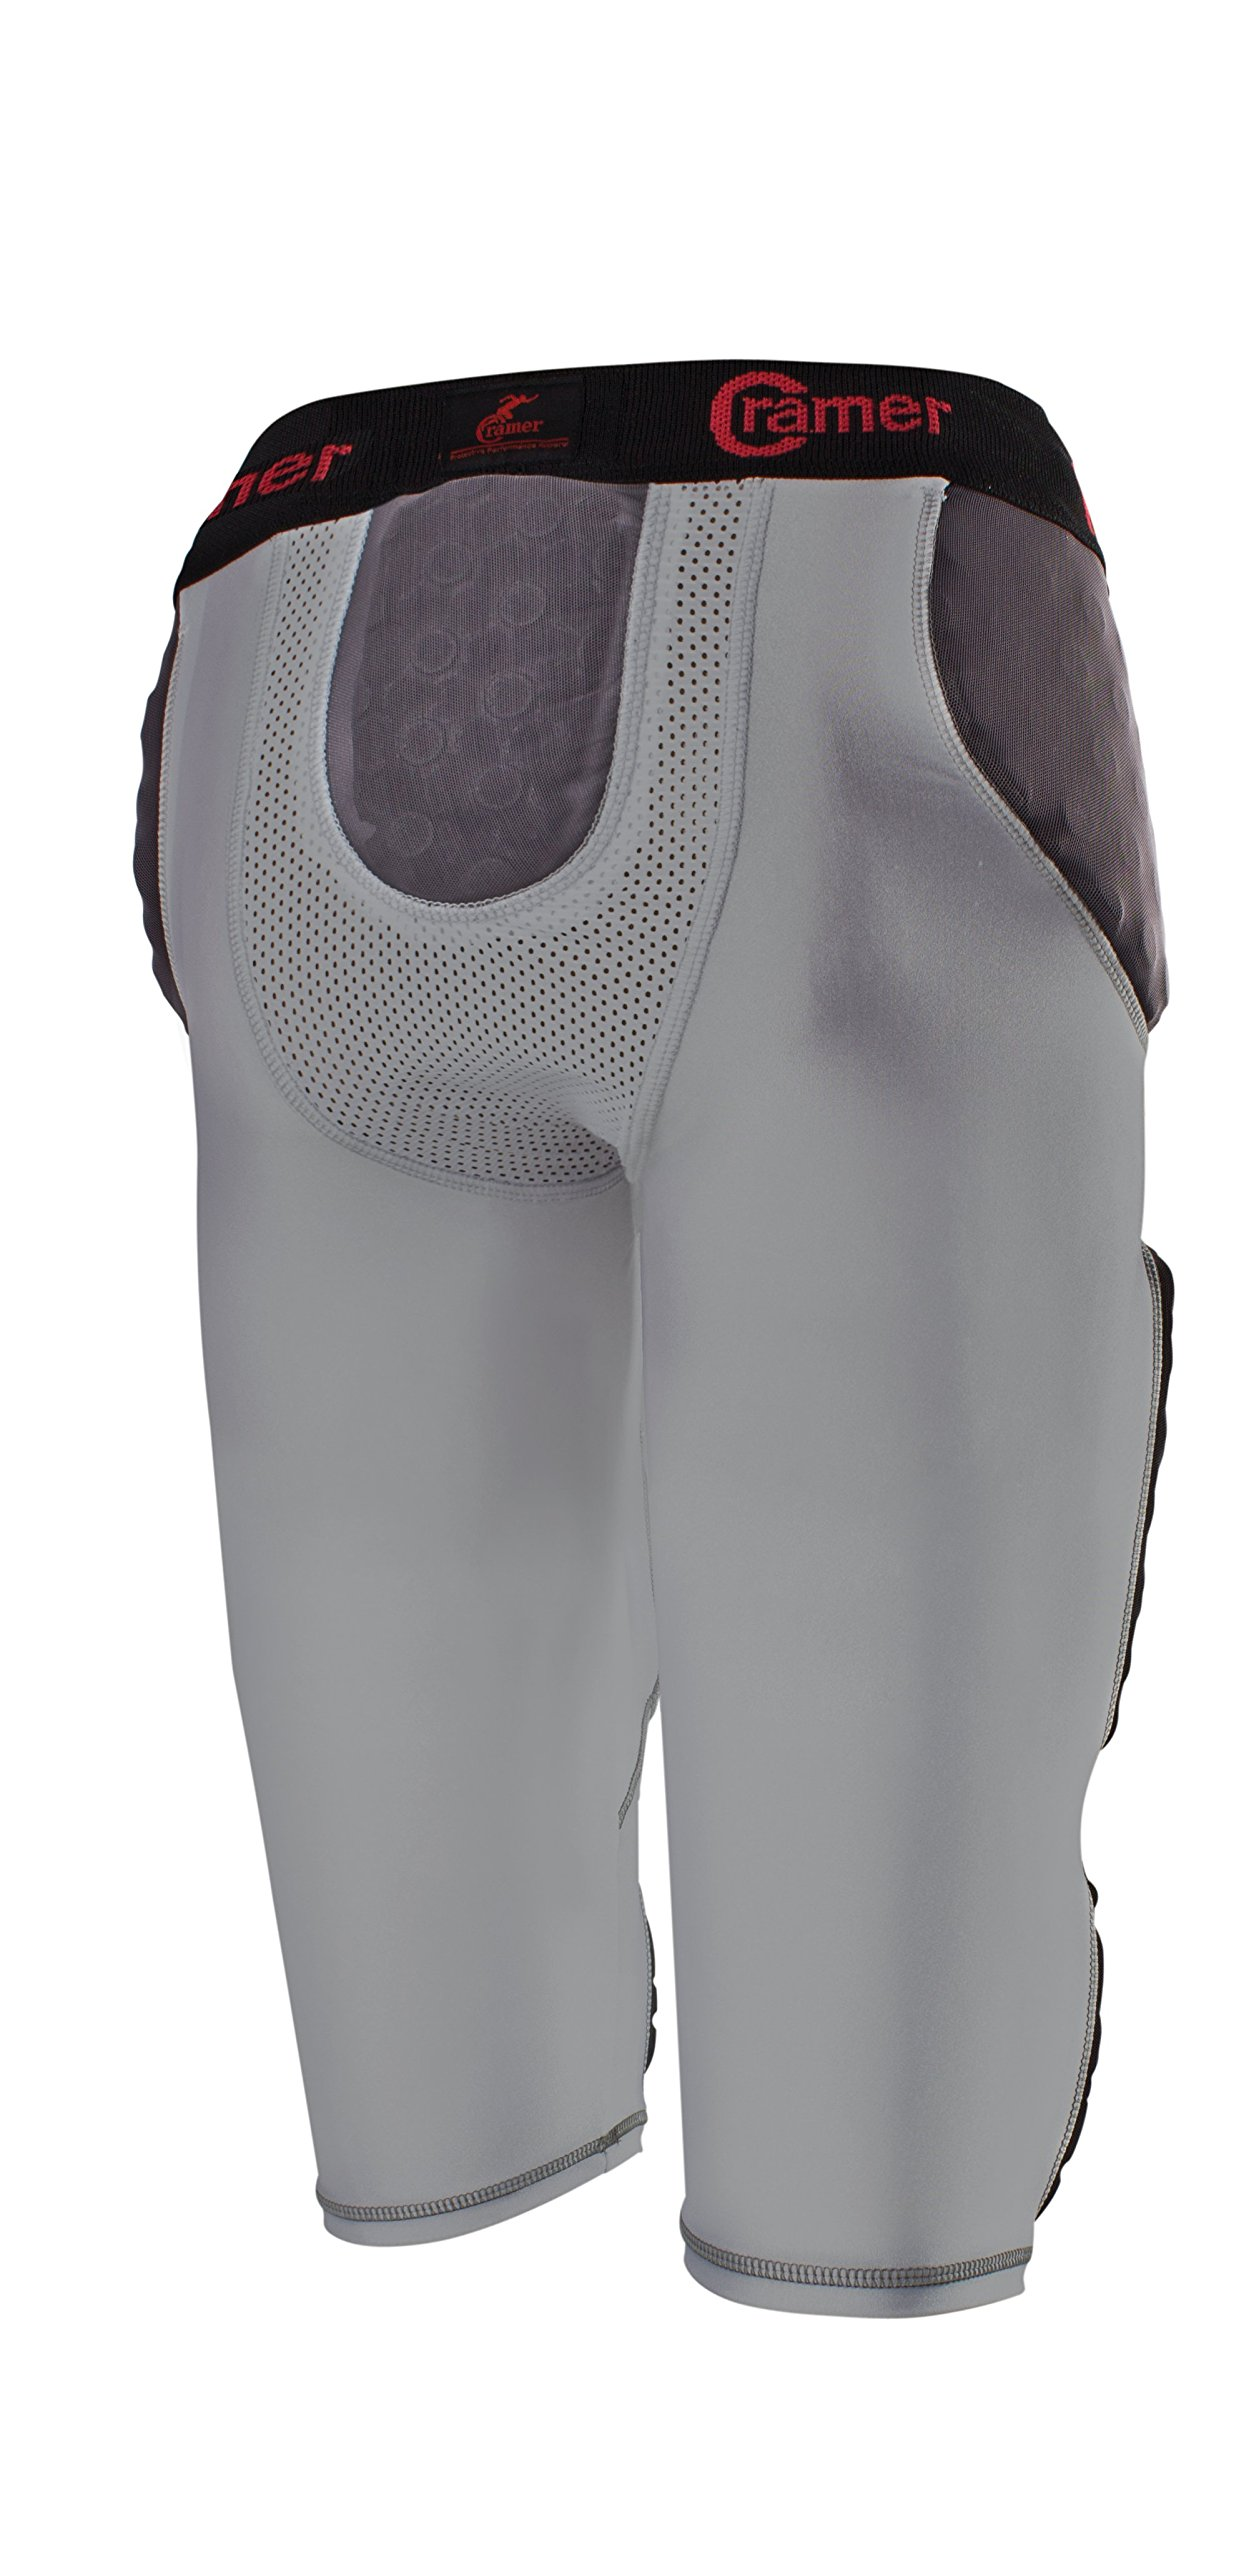 Cramer Lightning 7 Pad Football Girdle With Integrated Hip, Tailbone and Thigh Pads, Anti-Bacterial and Moisture-Wicking Fabric, Great Protection Without Impeding Athletic Performance, Gray, X-Large by Cramer (Image #3)